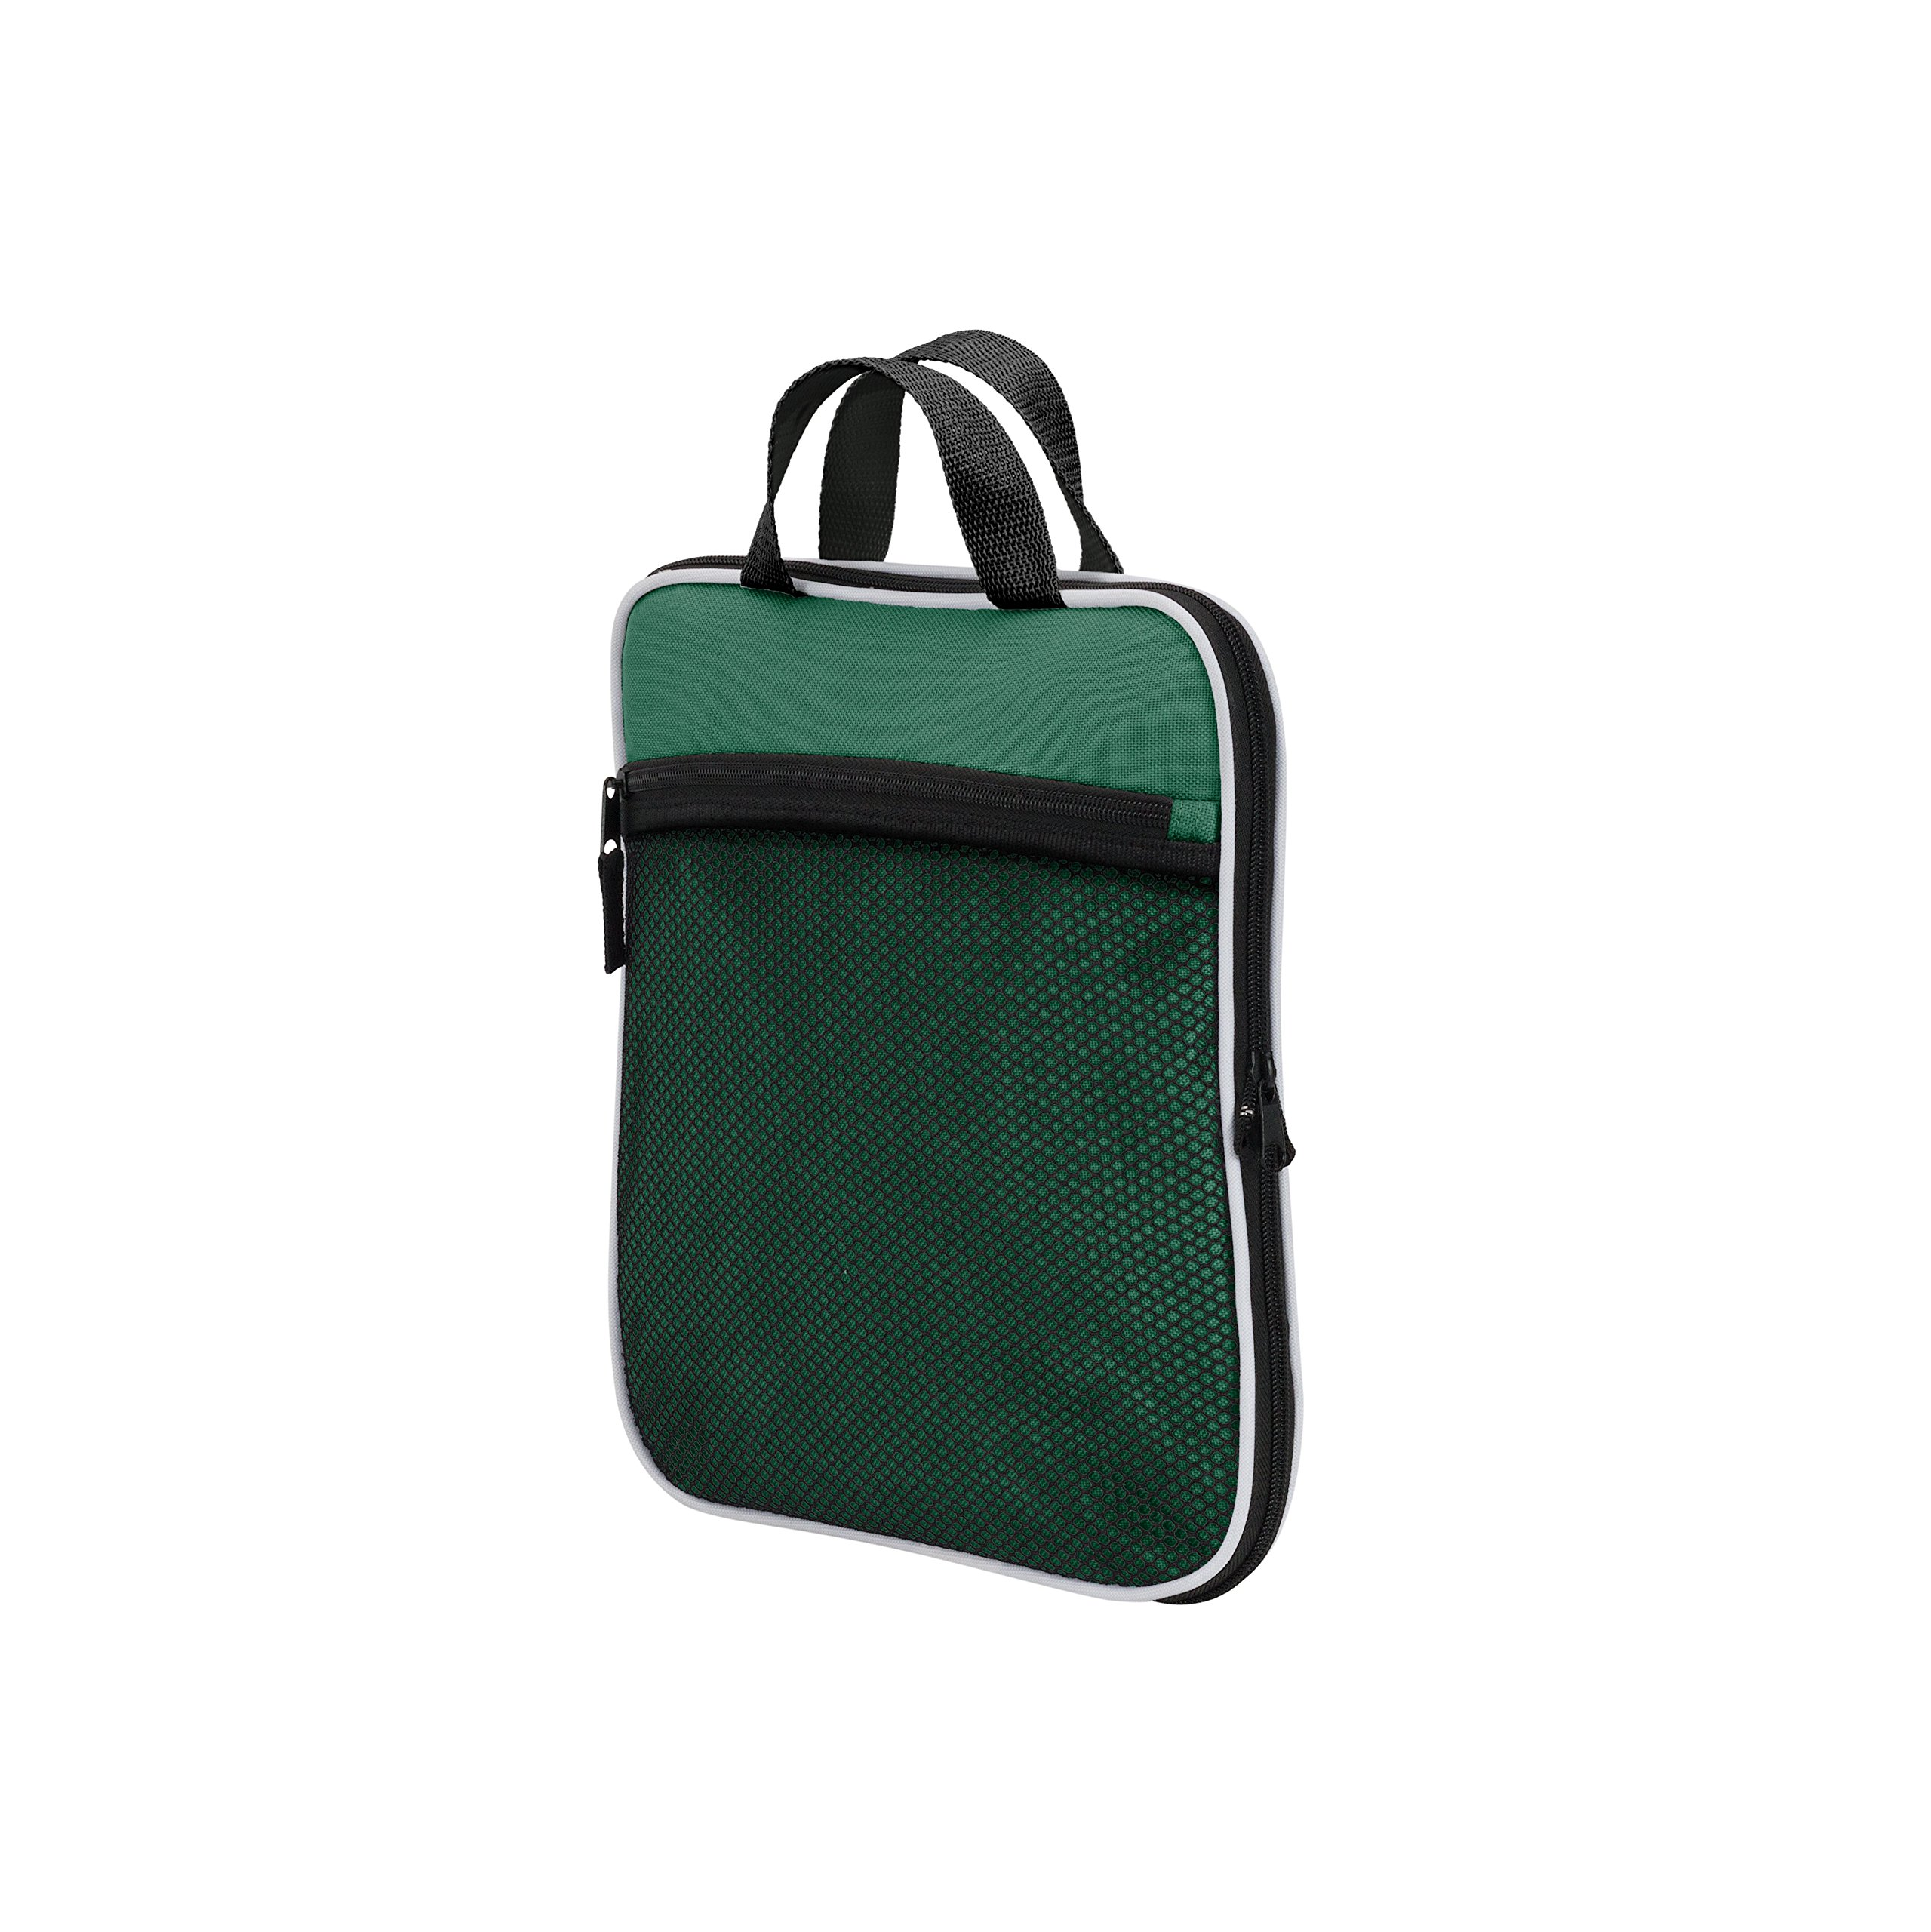 Officially Licensed NCAA Miami Hurricanes Steal Duffel Bag by The Northwest Company (Image #5)